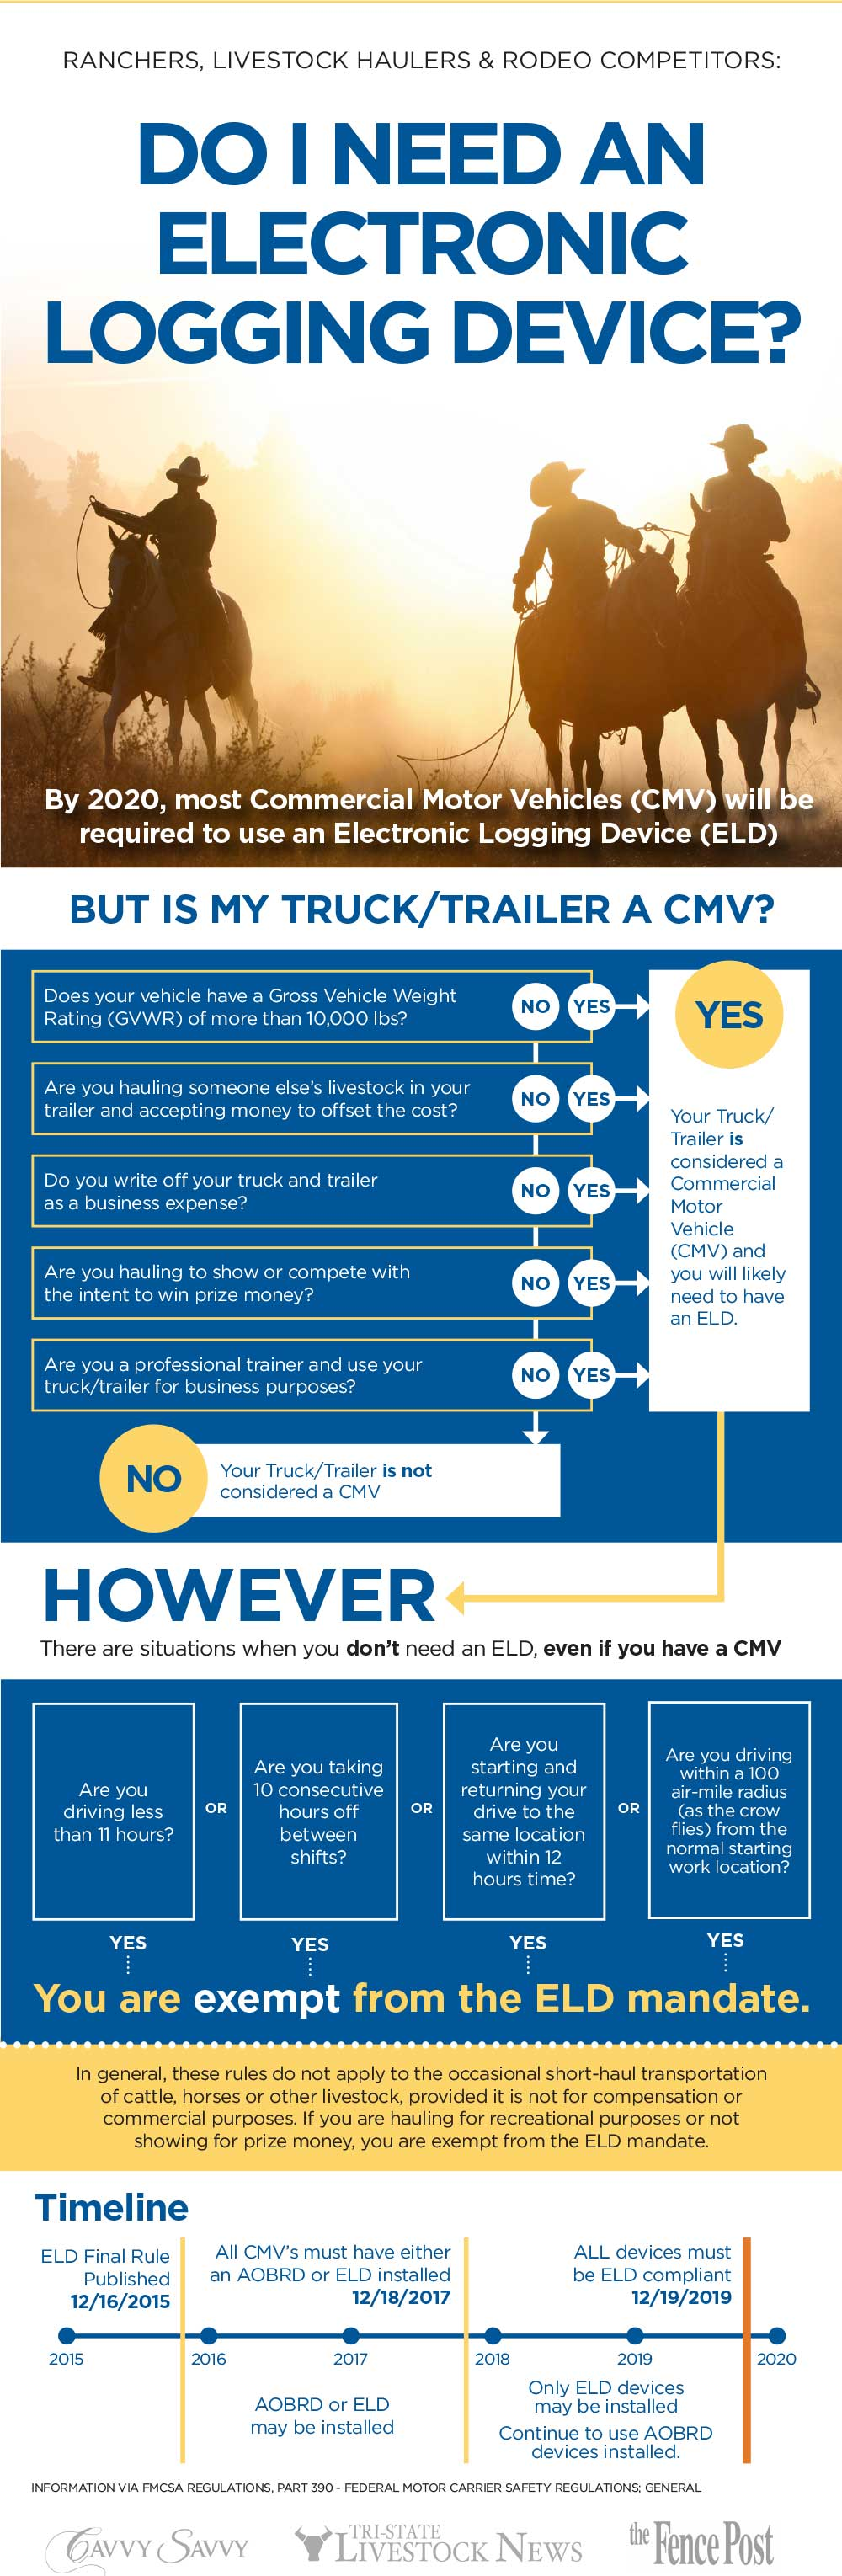 Infographic for Ranchers, Livestock Haulers and Rodeo Competitors regarding the upcoming ELD Mandate.